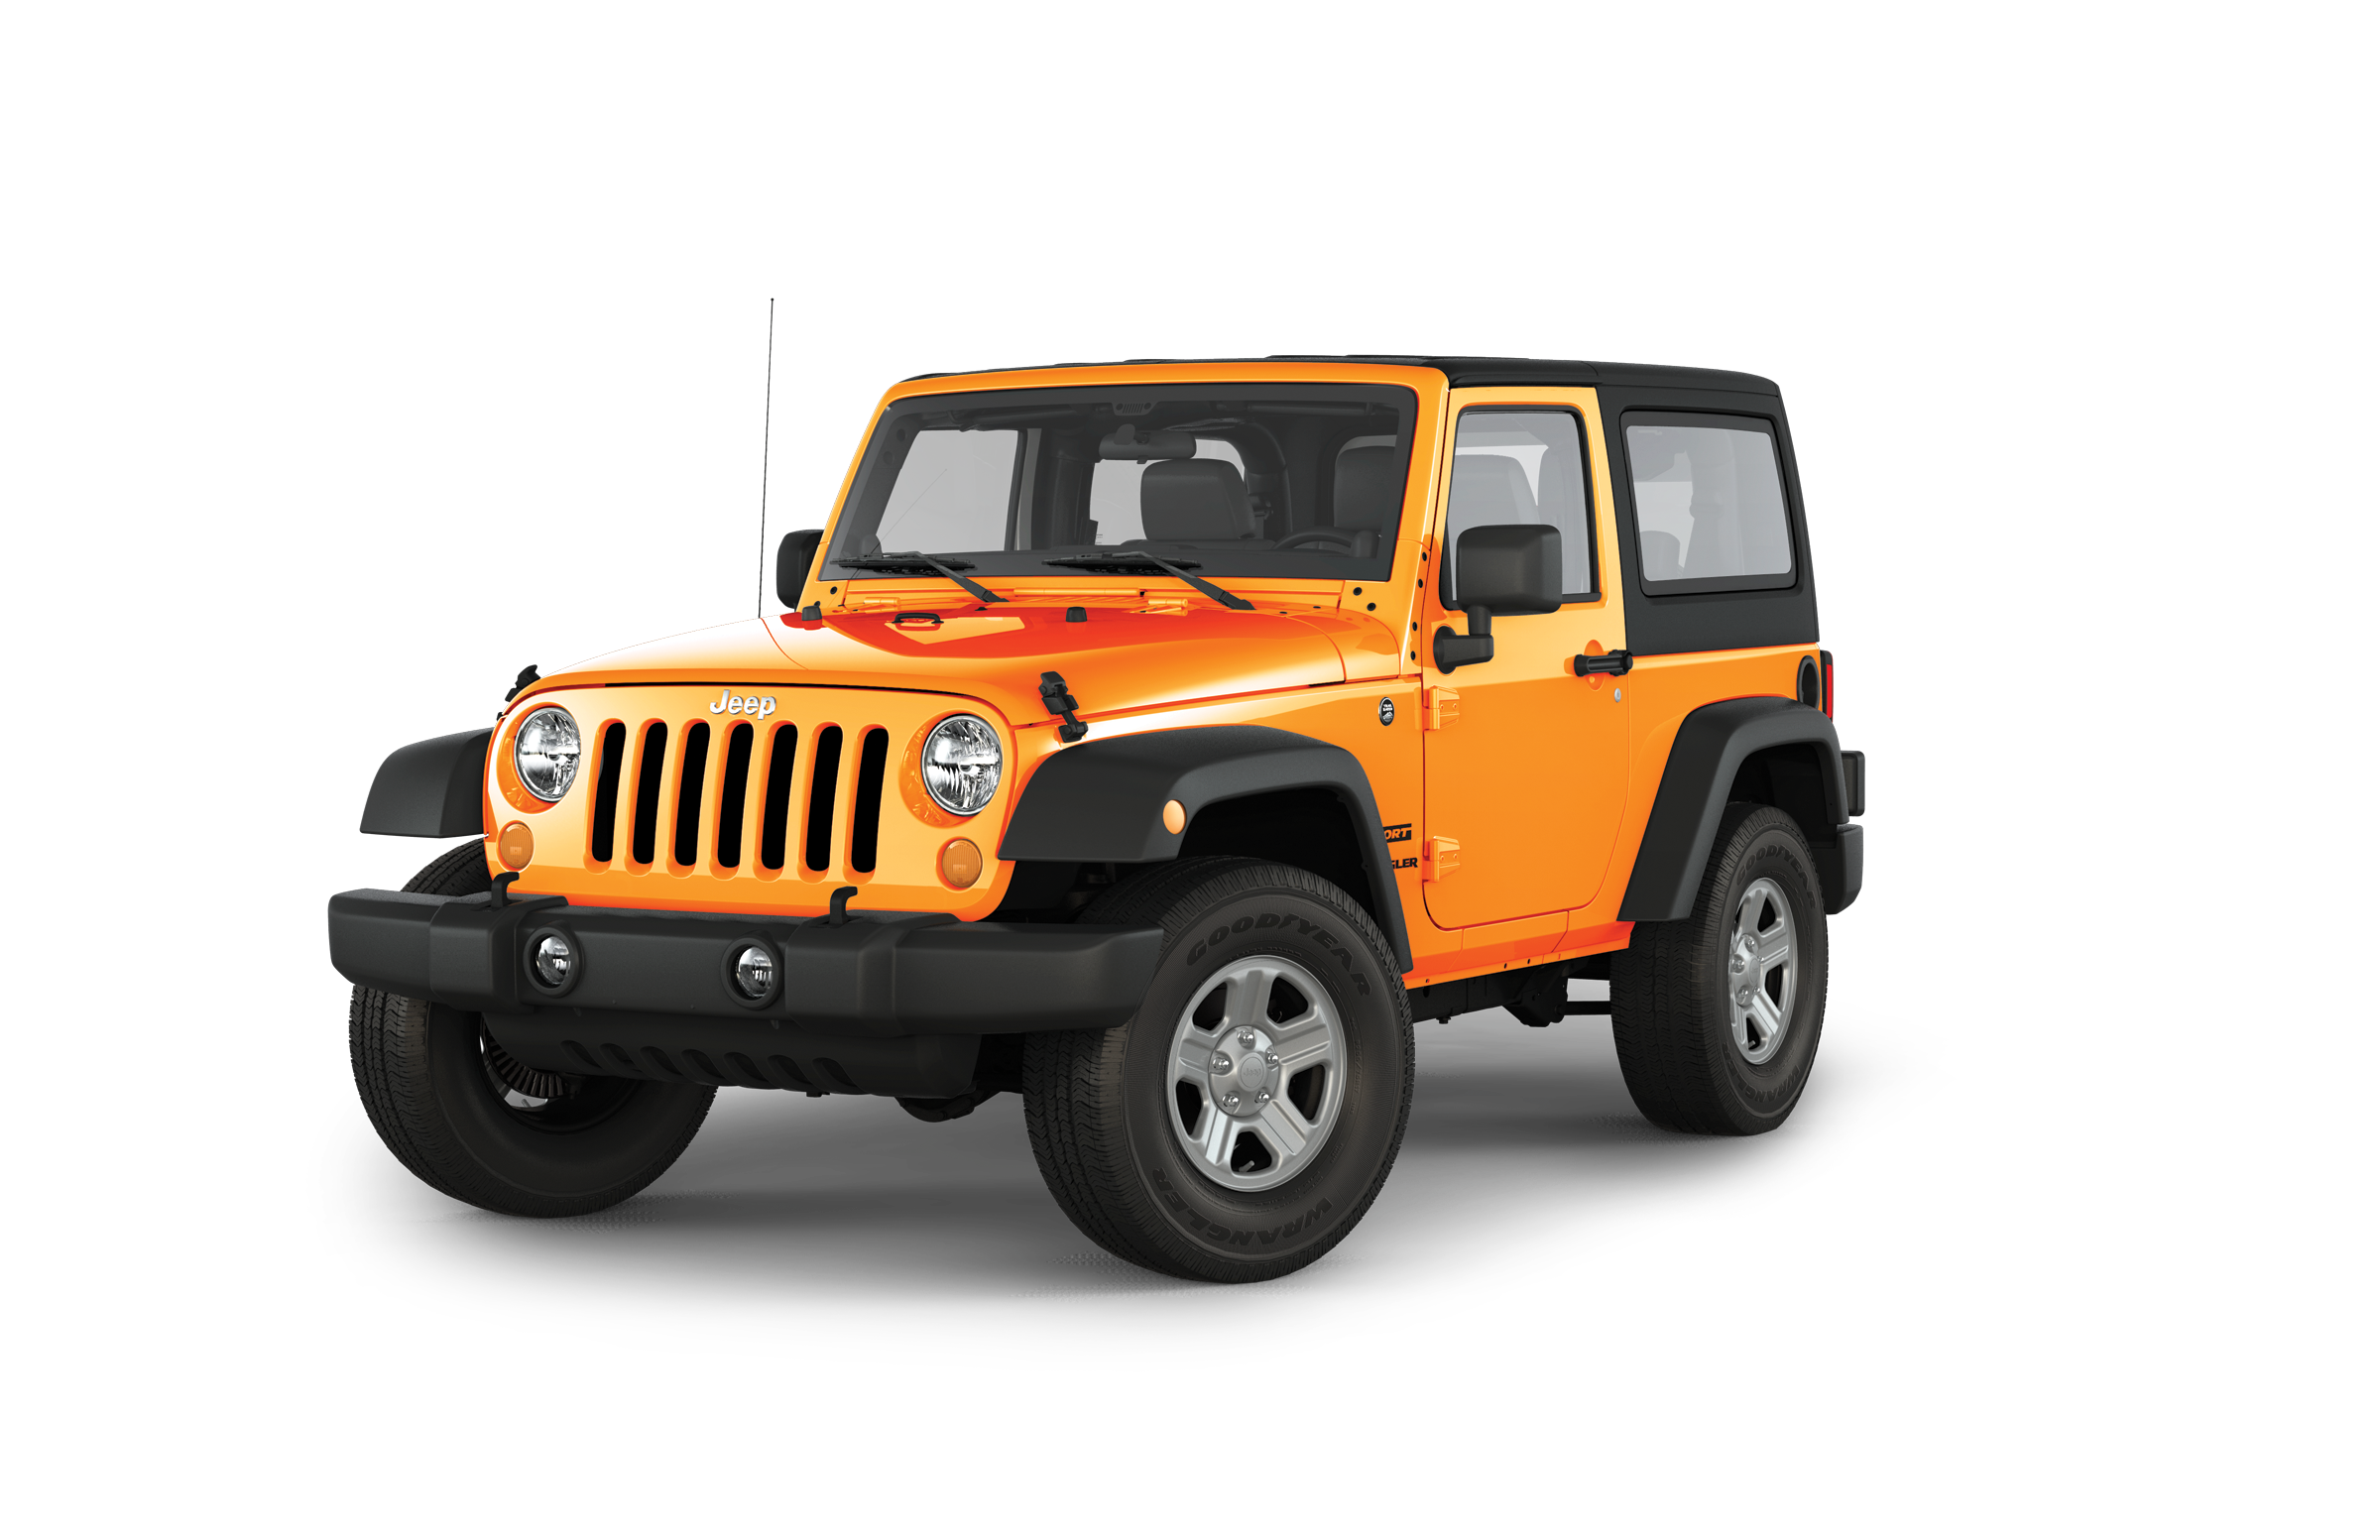 Grab and download Jeep PNG in High Resolution